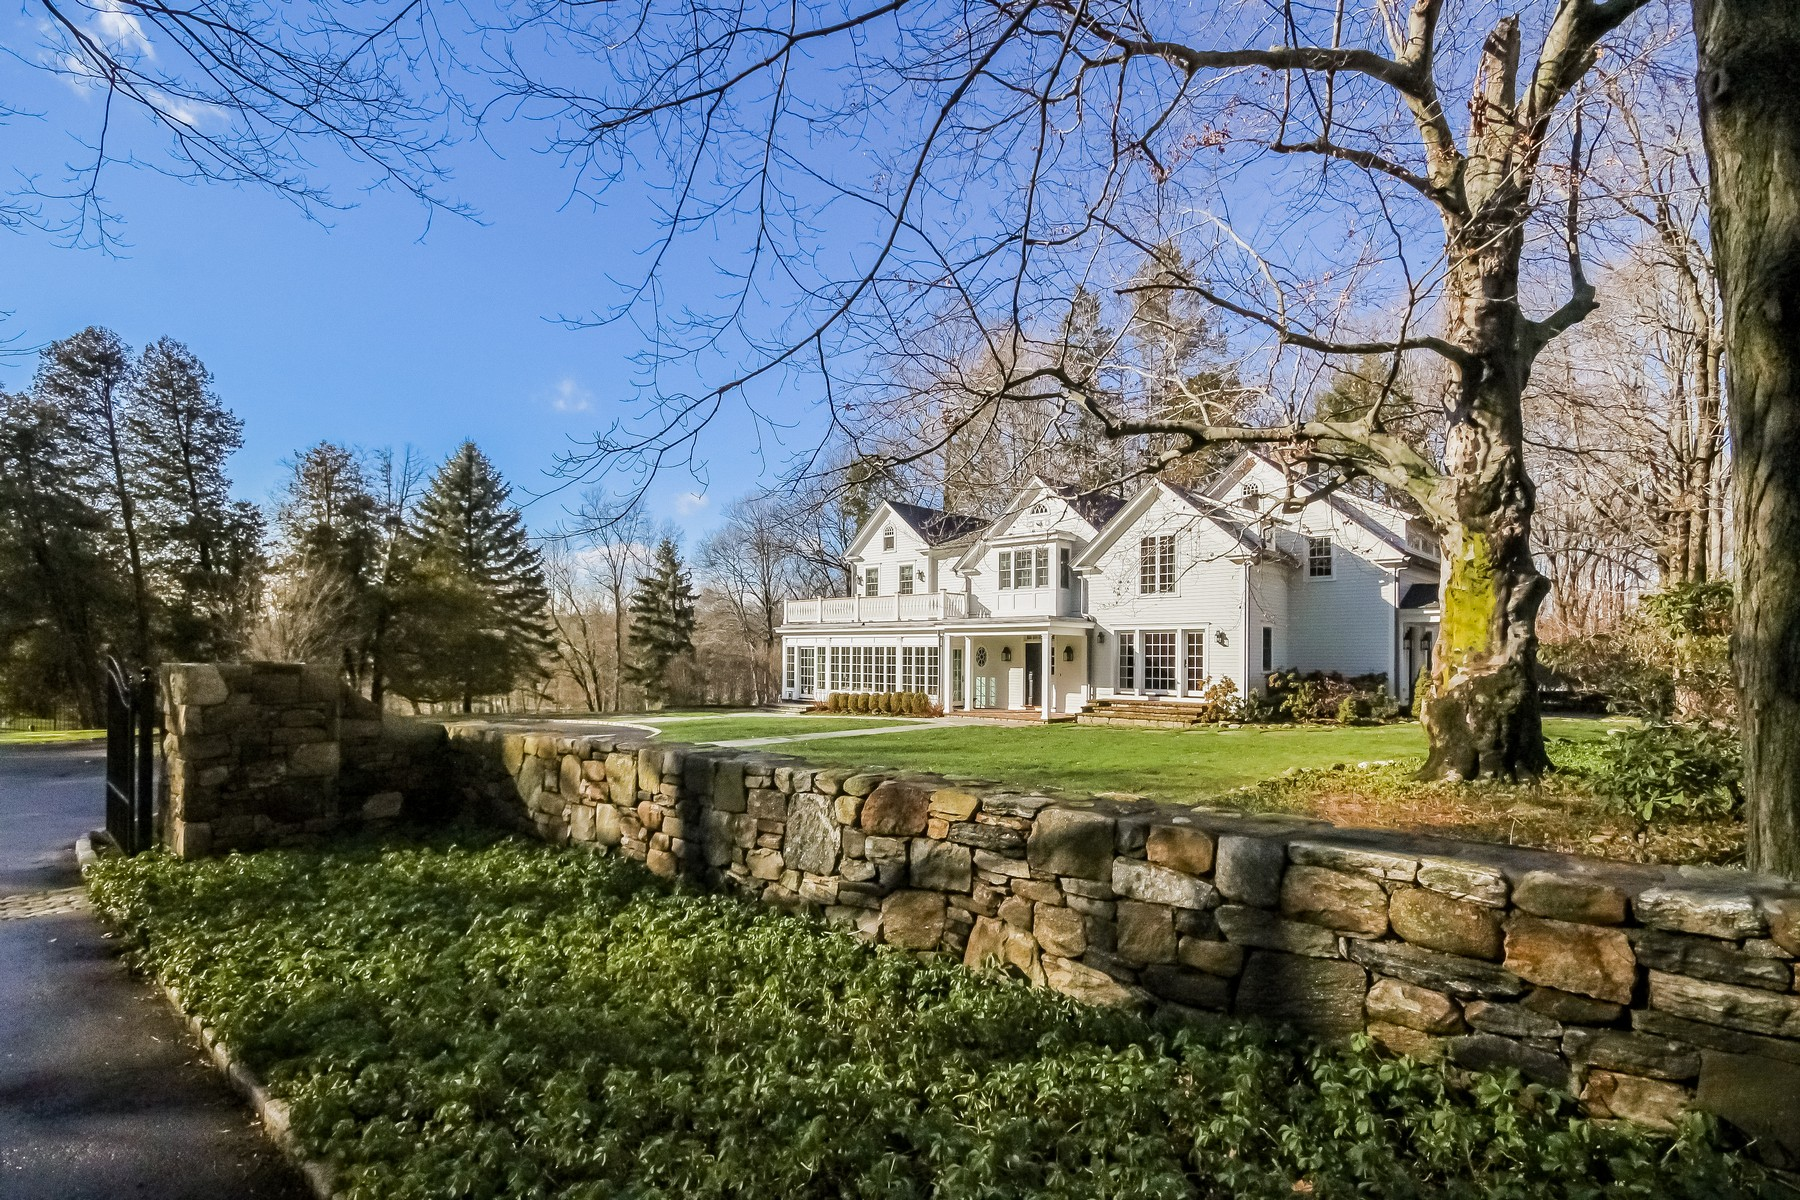 Single Family Home for Sale at GREENFIELD HILL 917 Merwins Lane Fairfield, Connecticut 06824 United States